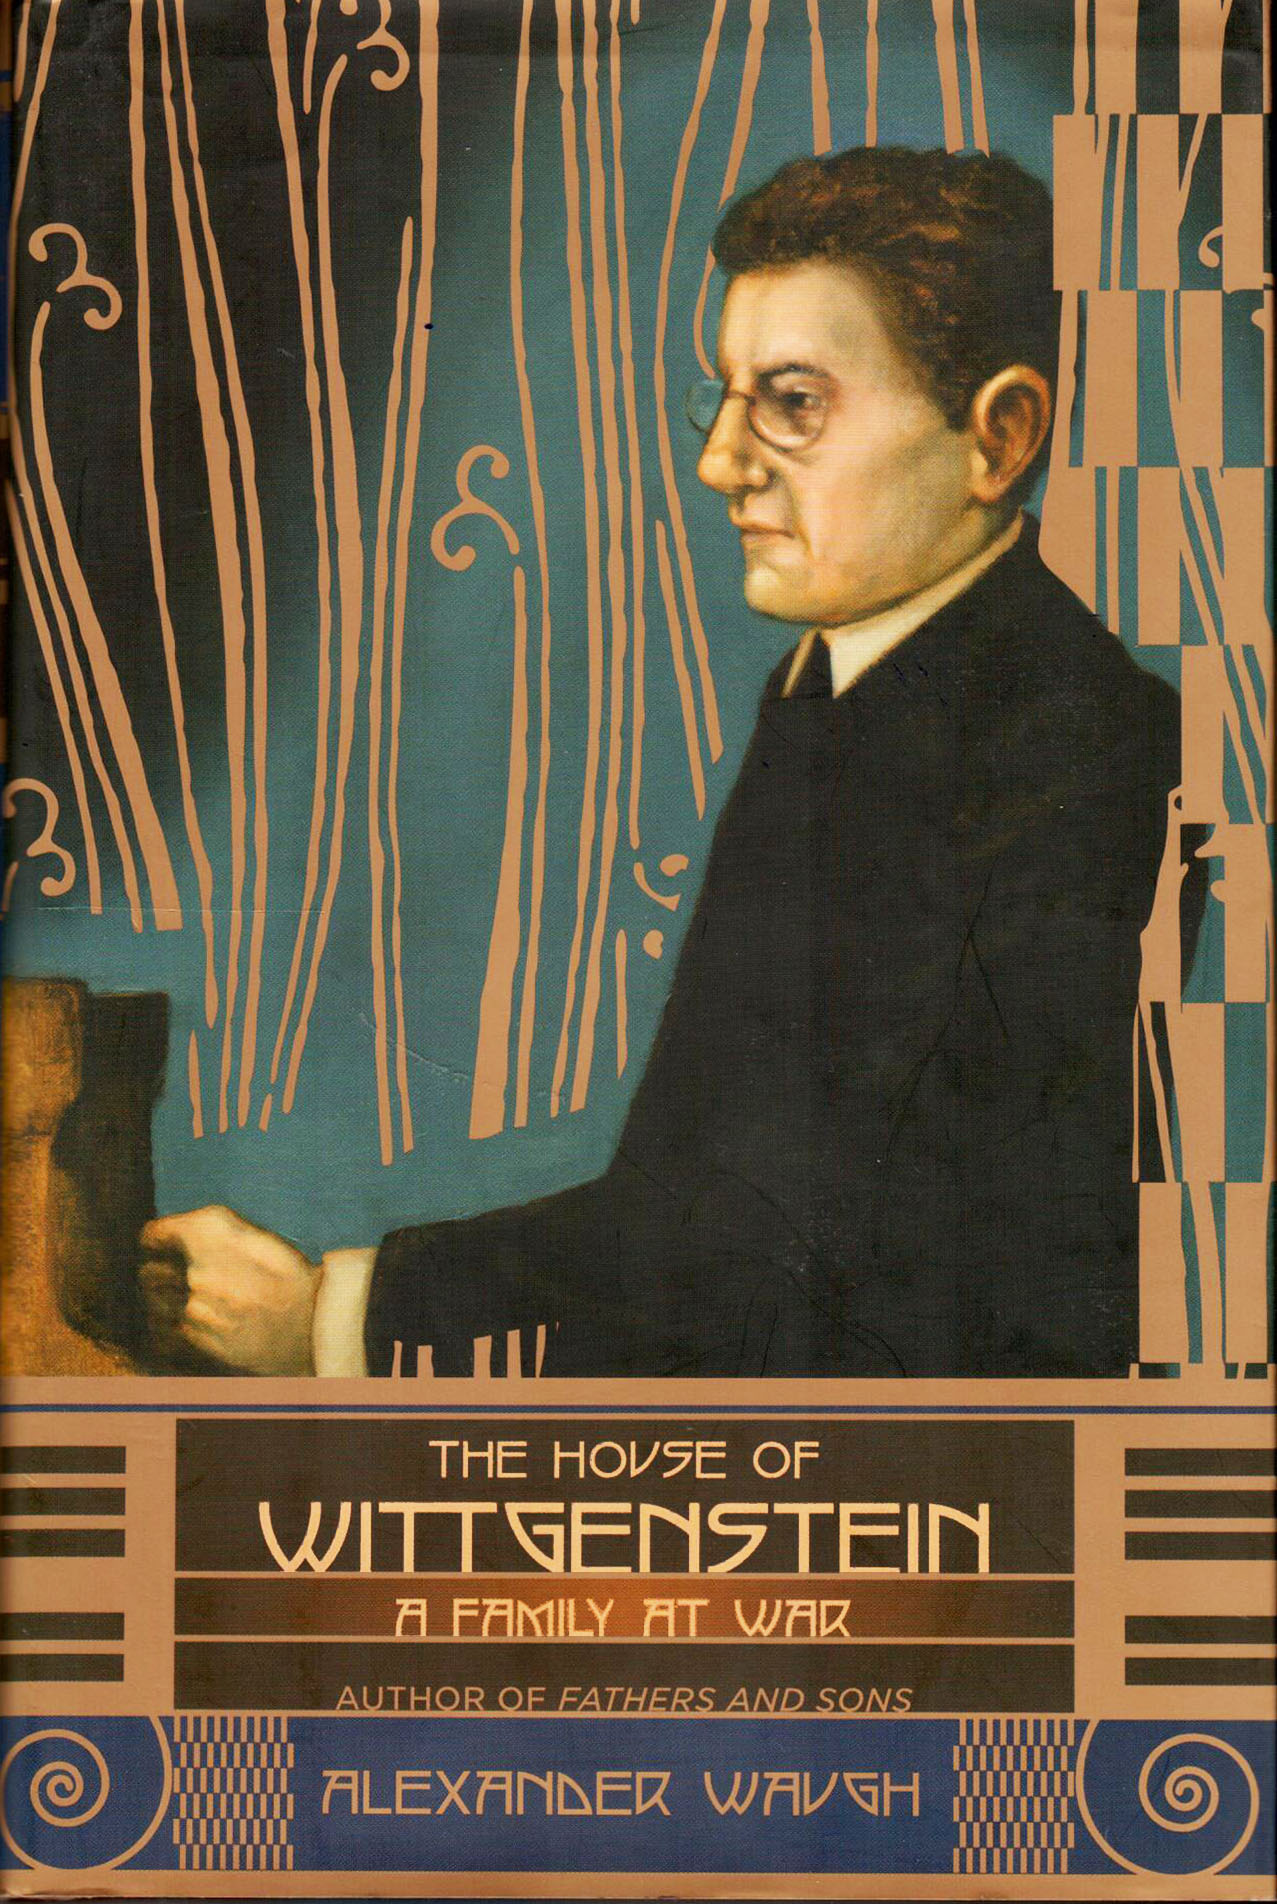 wittgenstein-edit